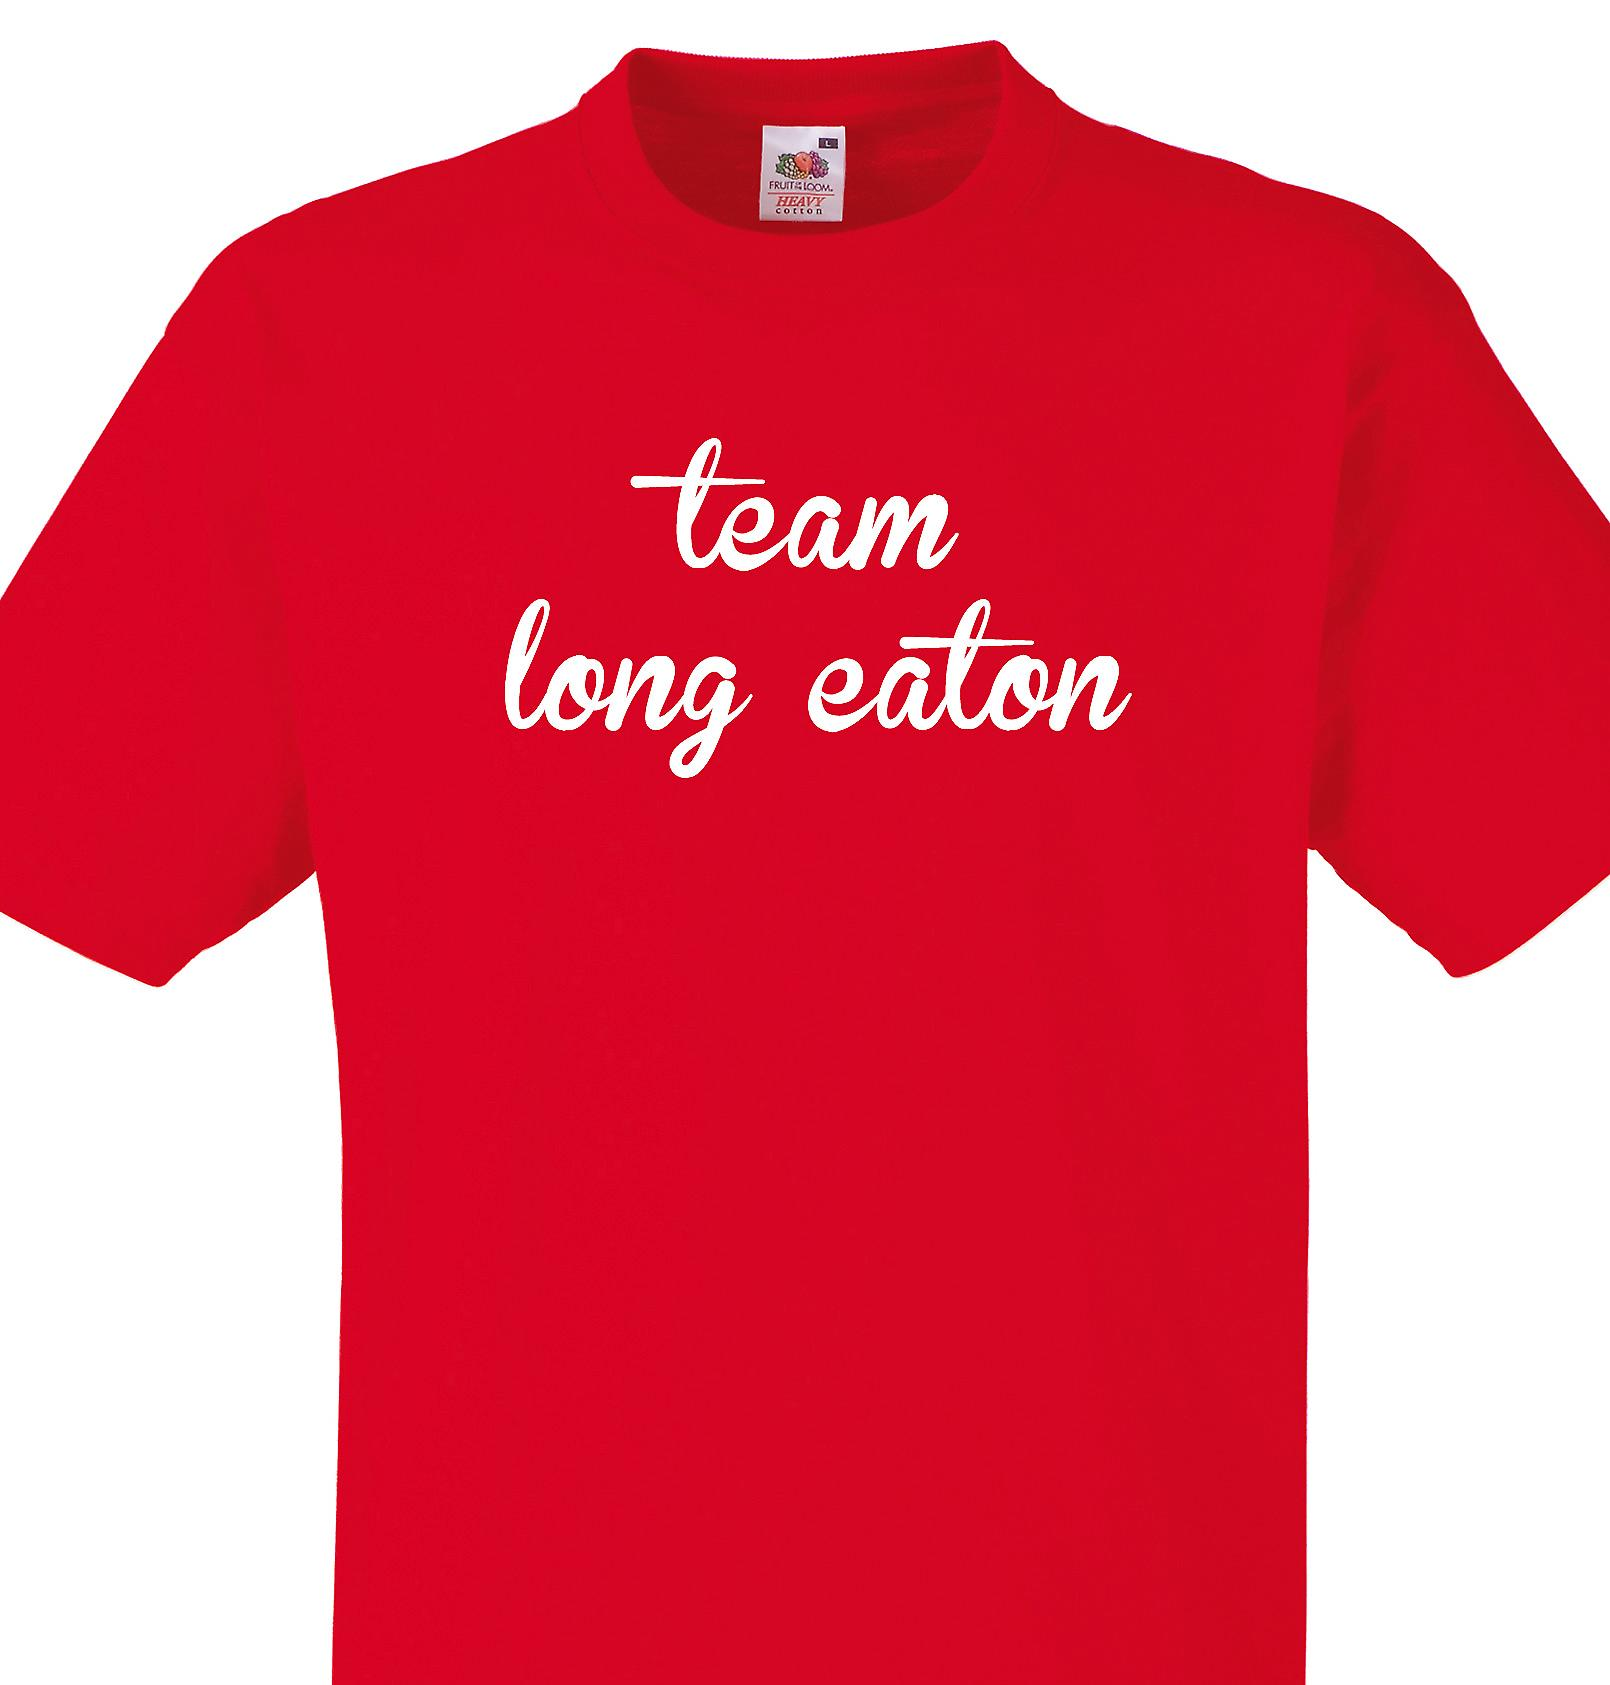 Team Long eaton Red T shirt